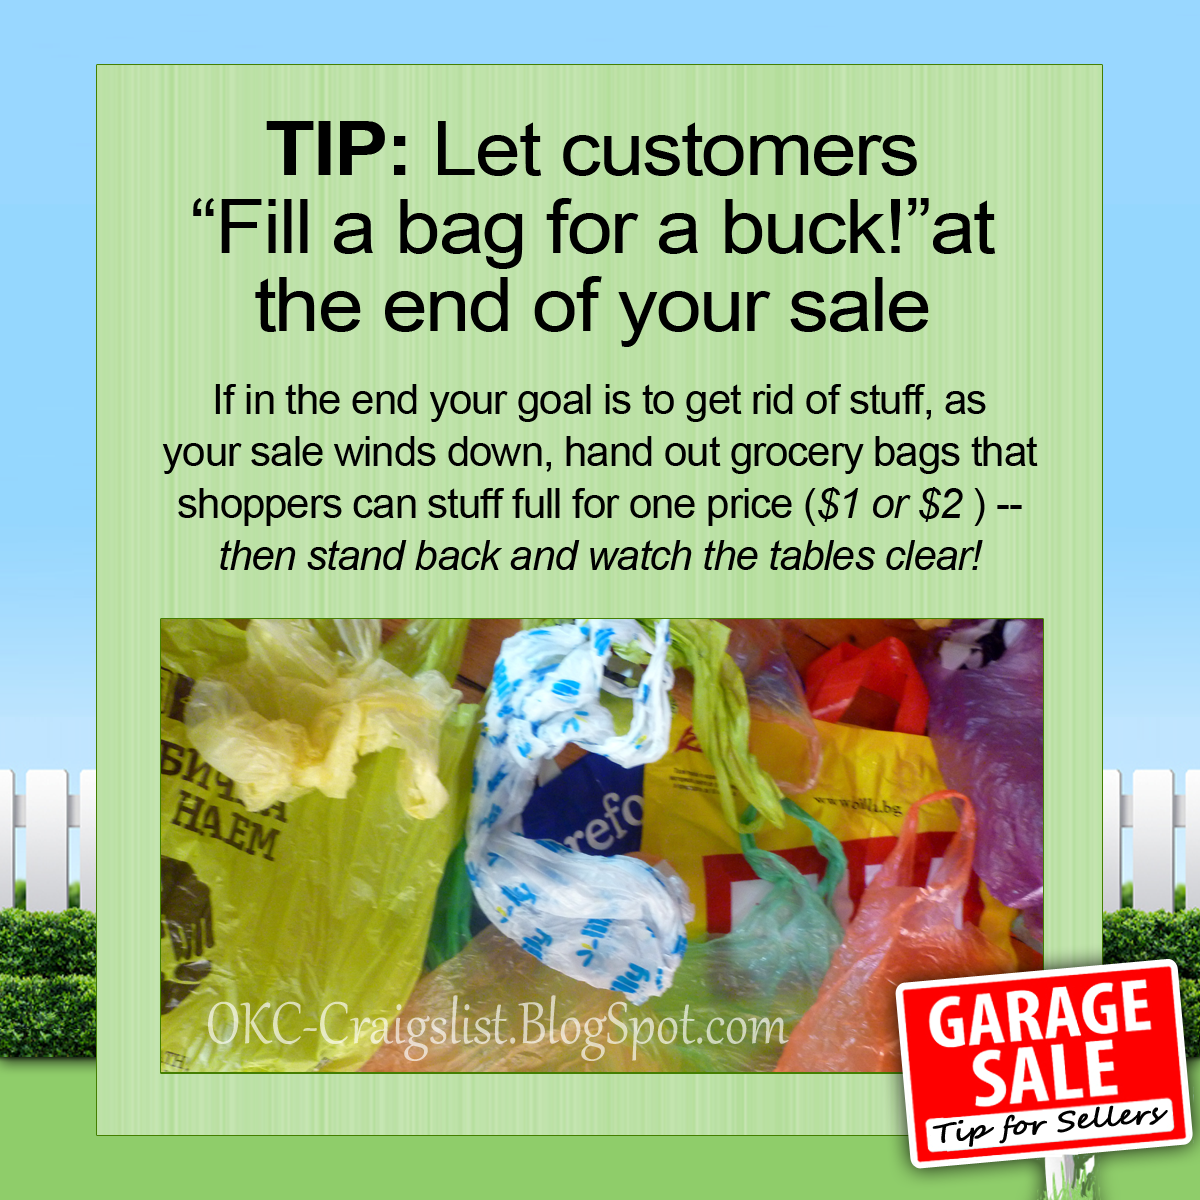 GARAGE SALE TIP:  Fill a bag for a buck pricing